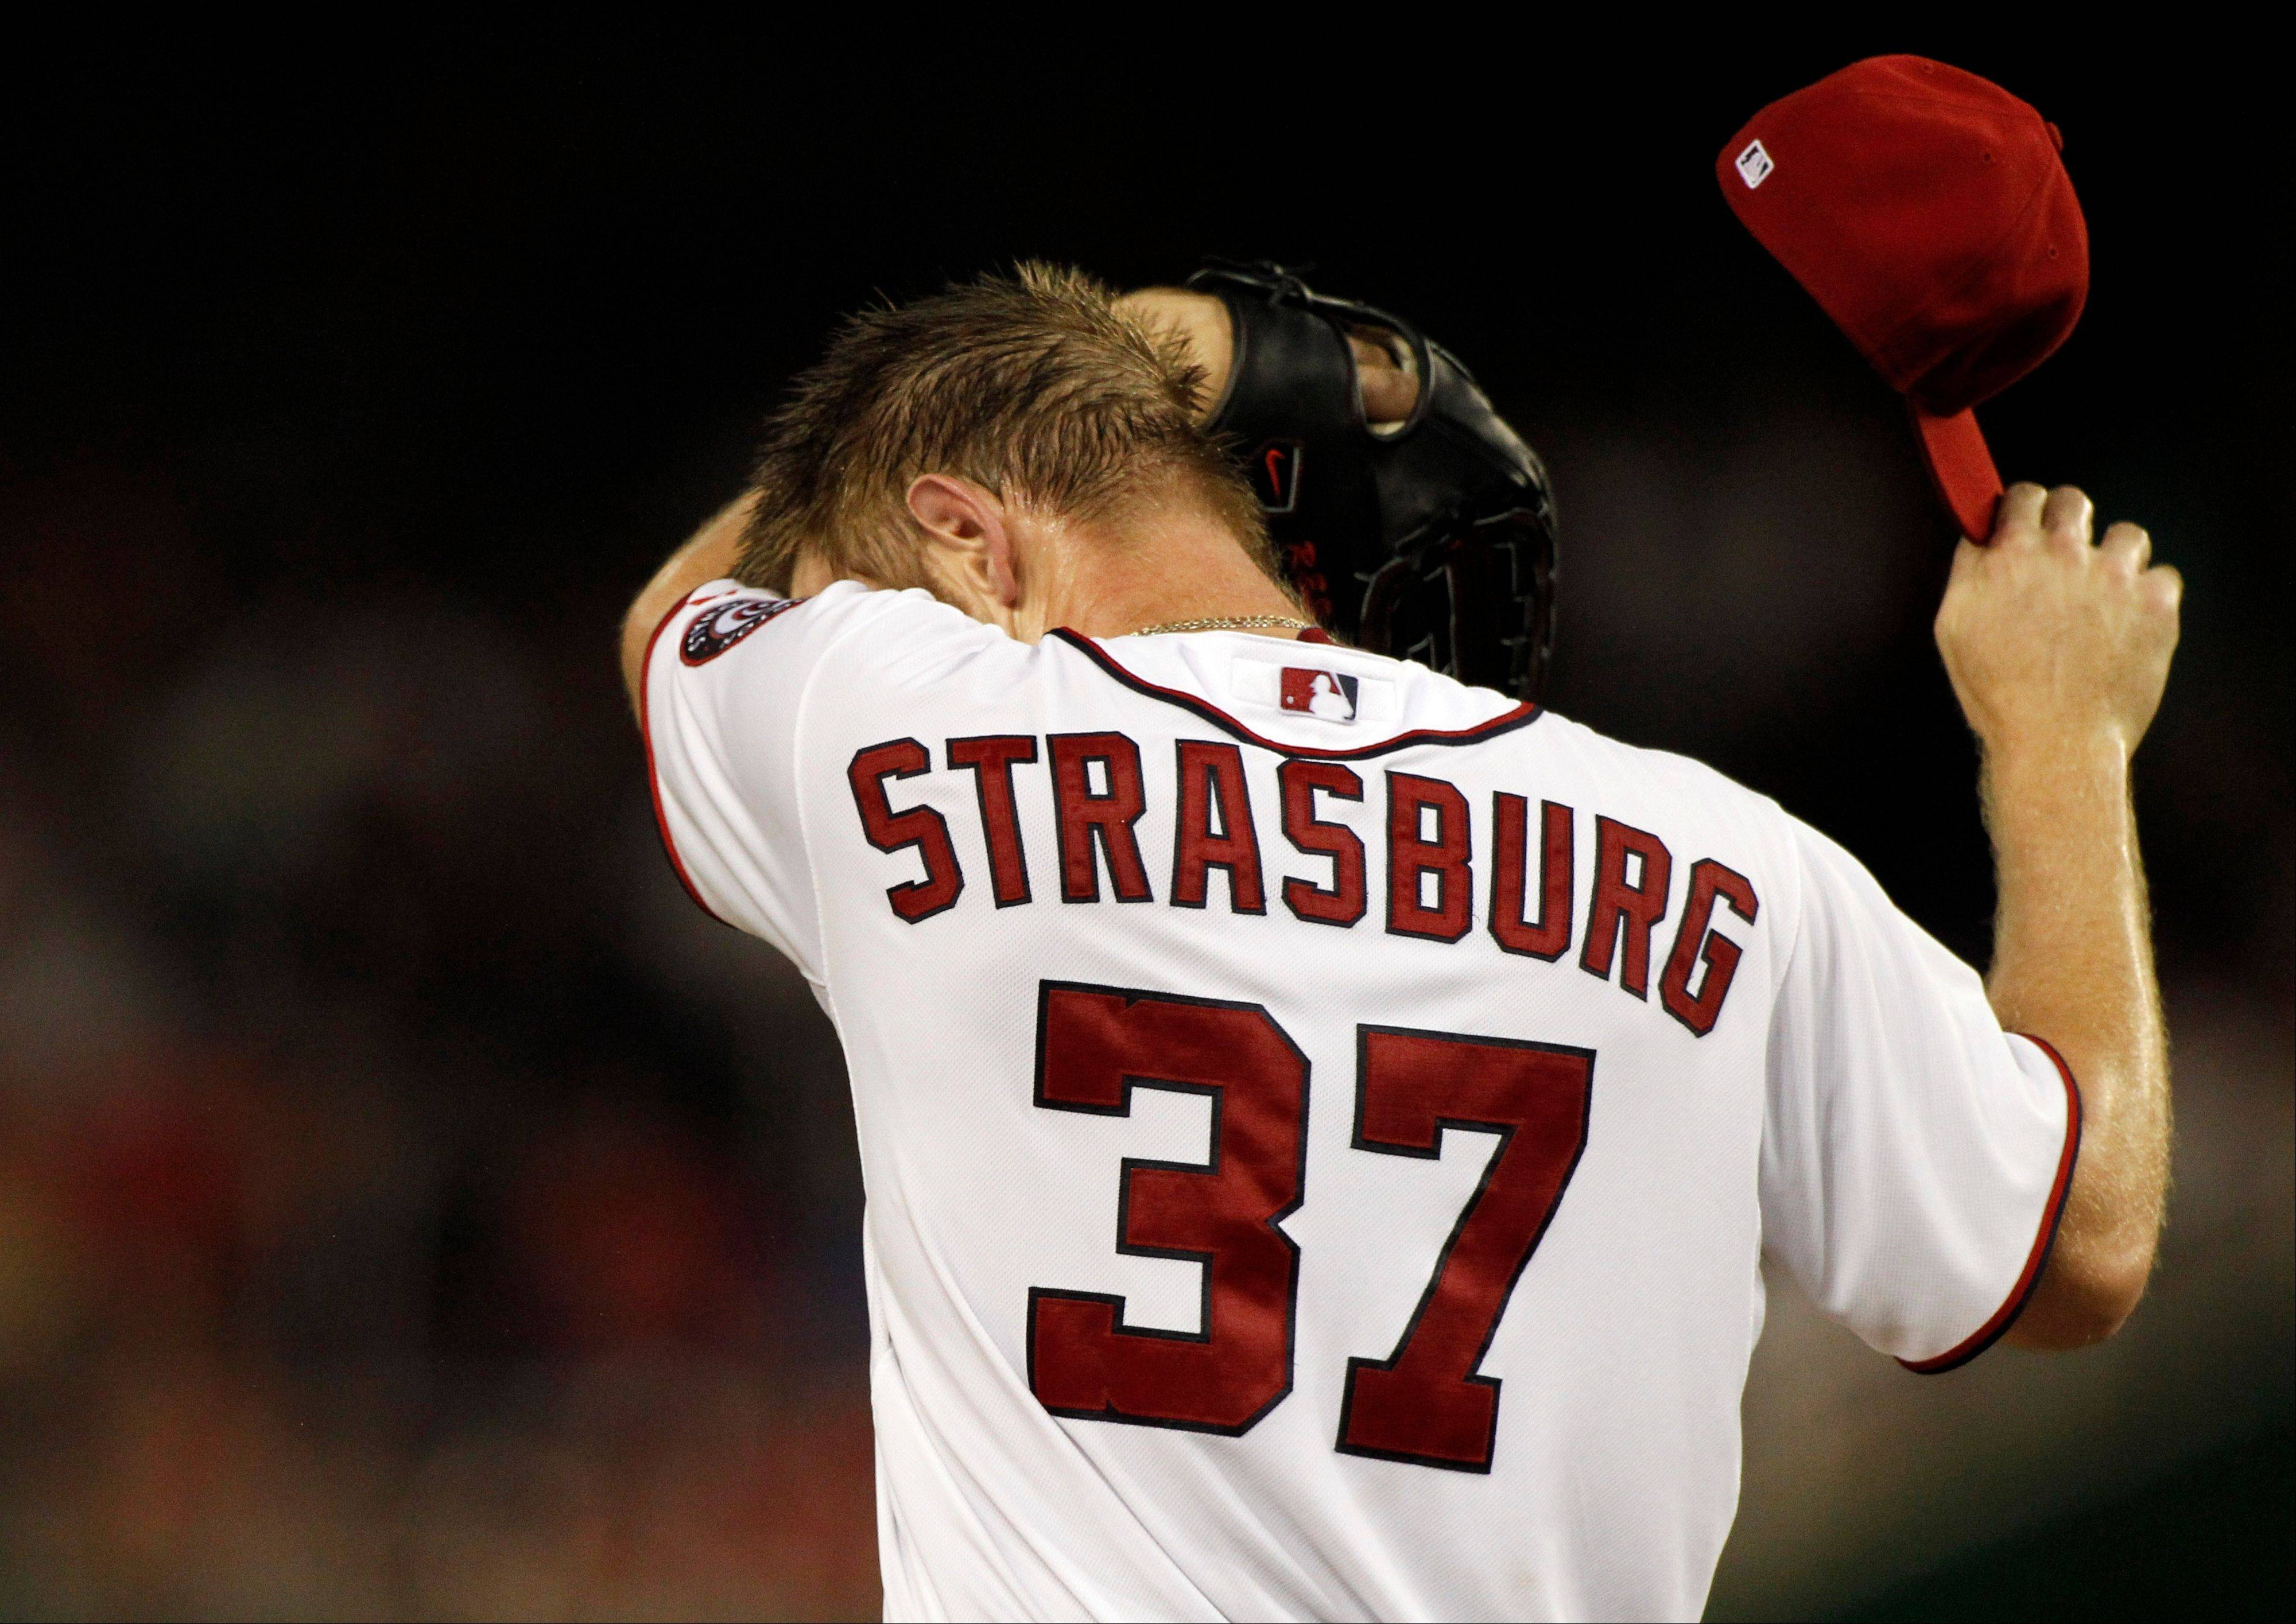 Washington Nationals starting pitcher Stephen Strasburg wipes his face on the mound during the second inning Friday at home against Miami Marlins. Stasburg allowed two runs in the first, one in the second and two in the third, giving up six hits.